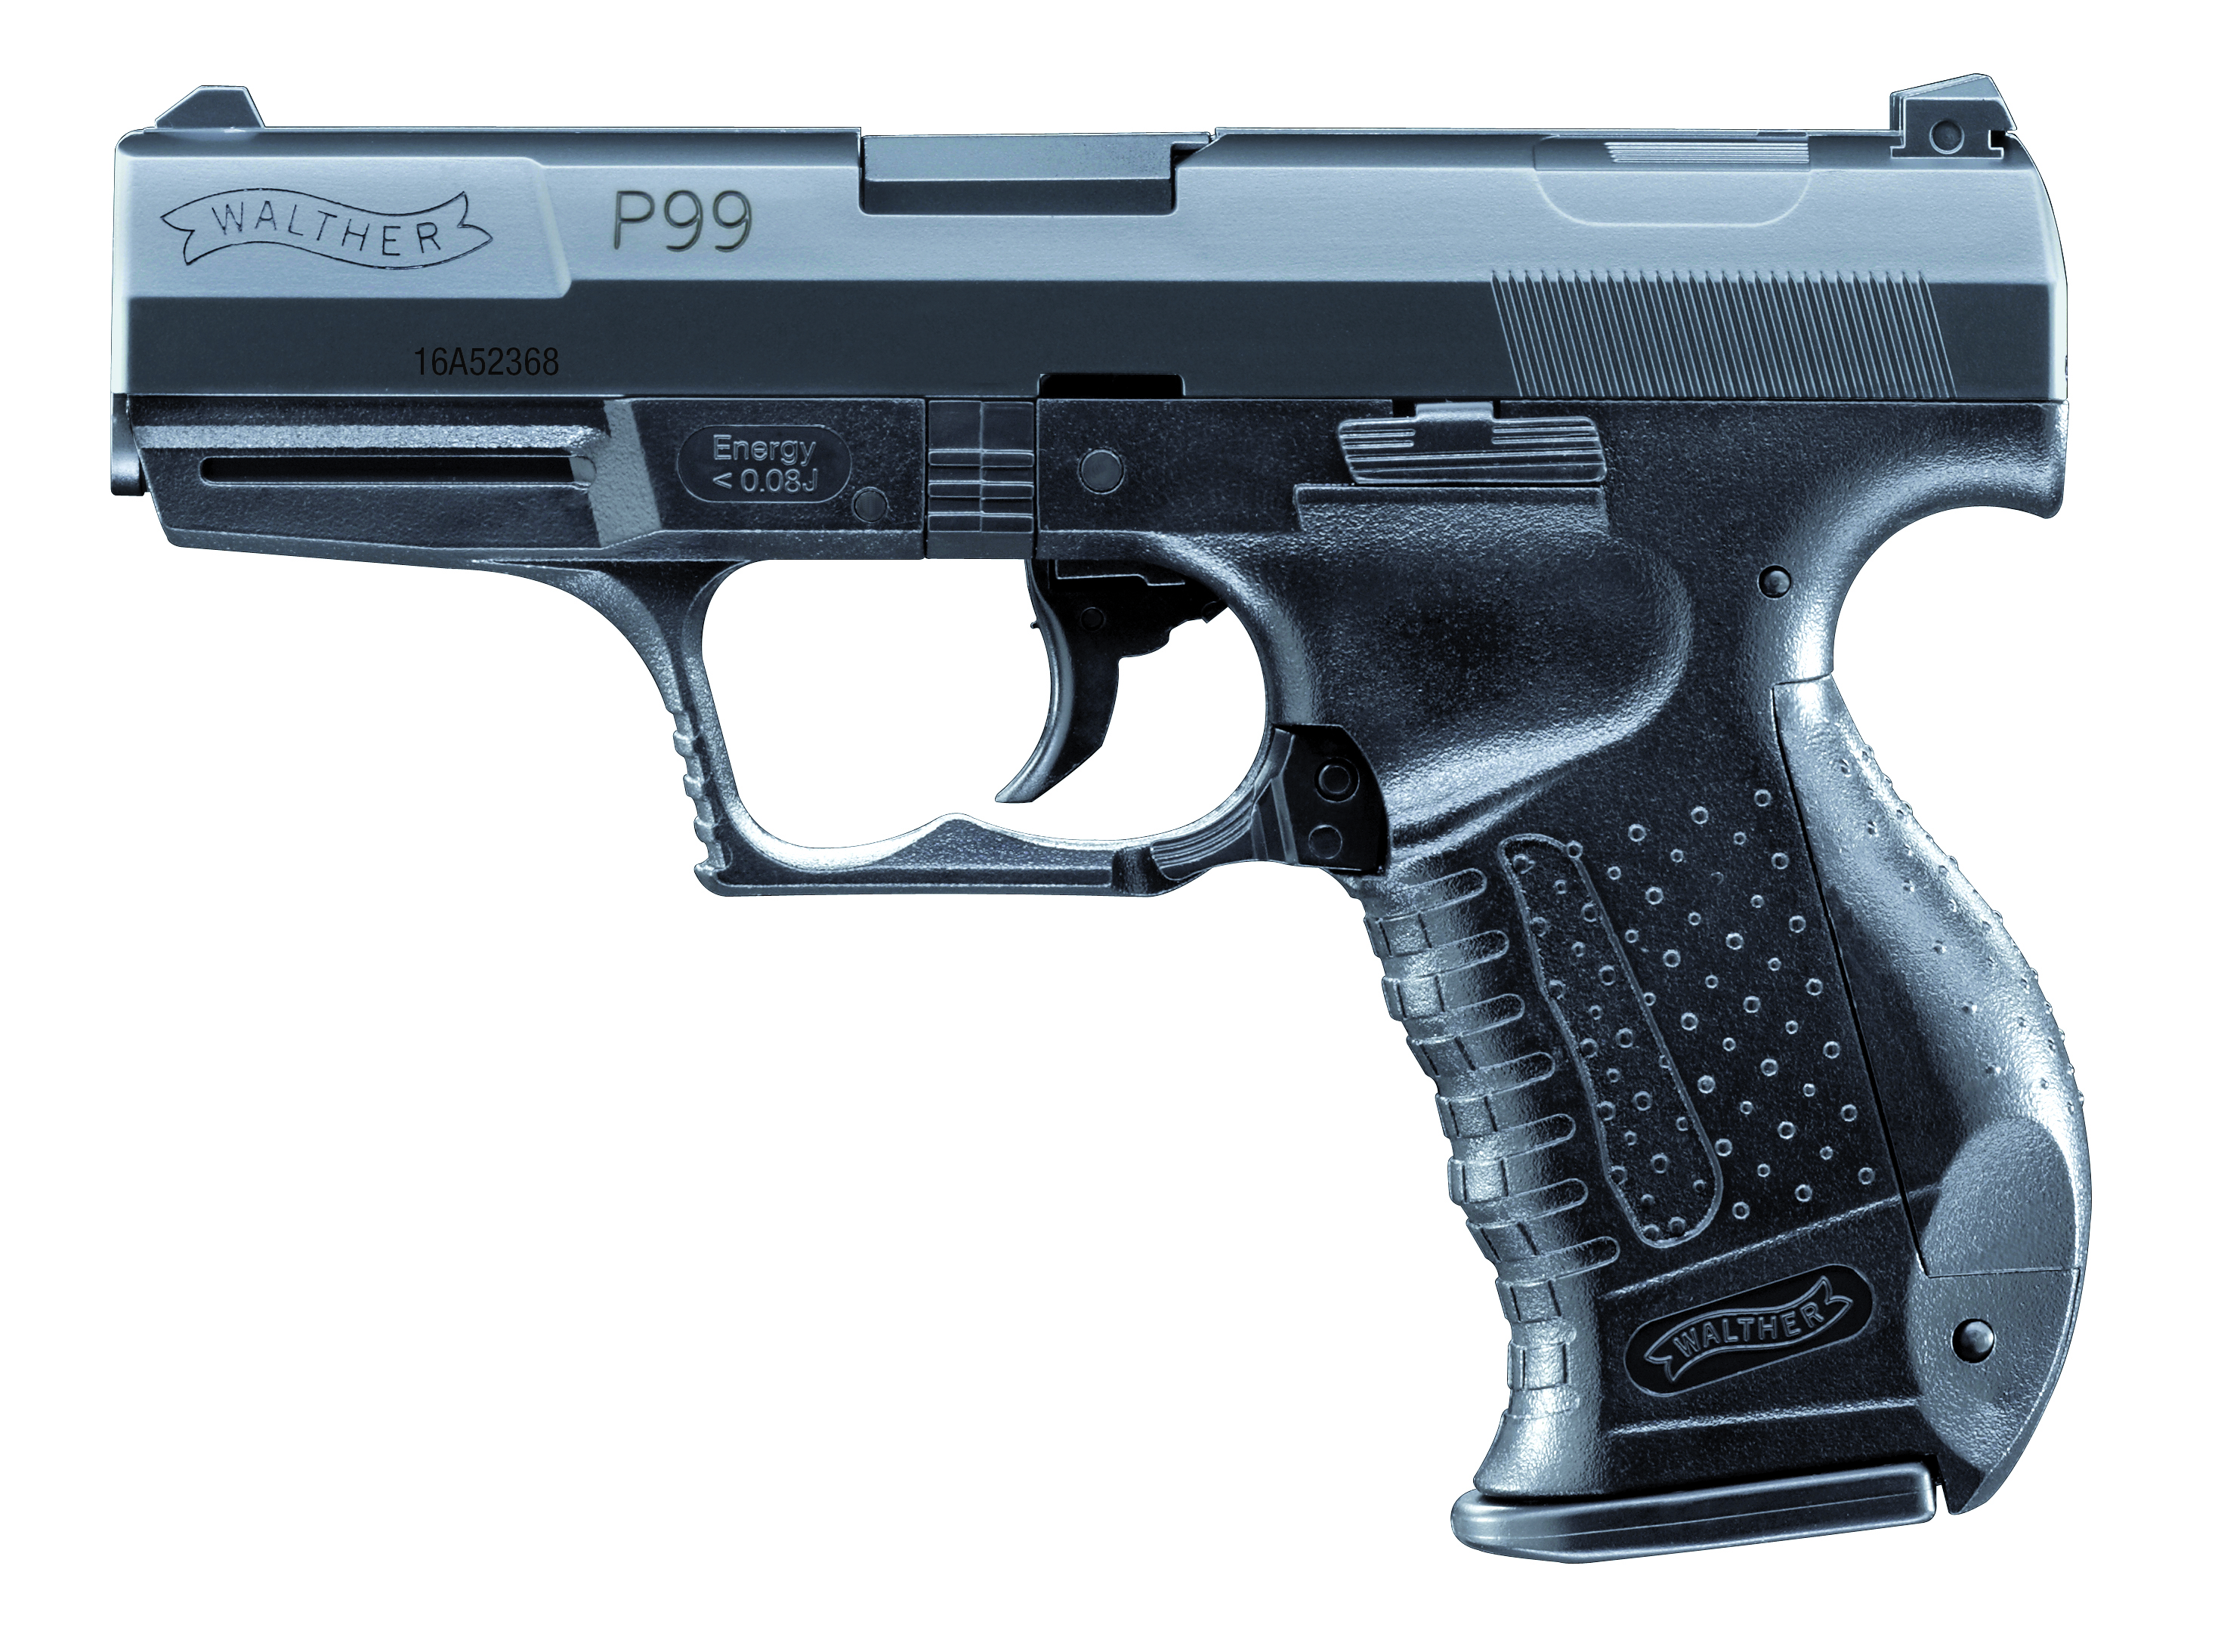 WALTHER (Umarex) Airsoft Pistol Toy P99